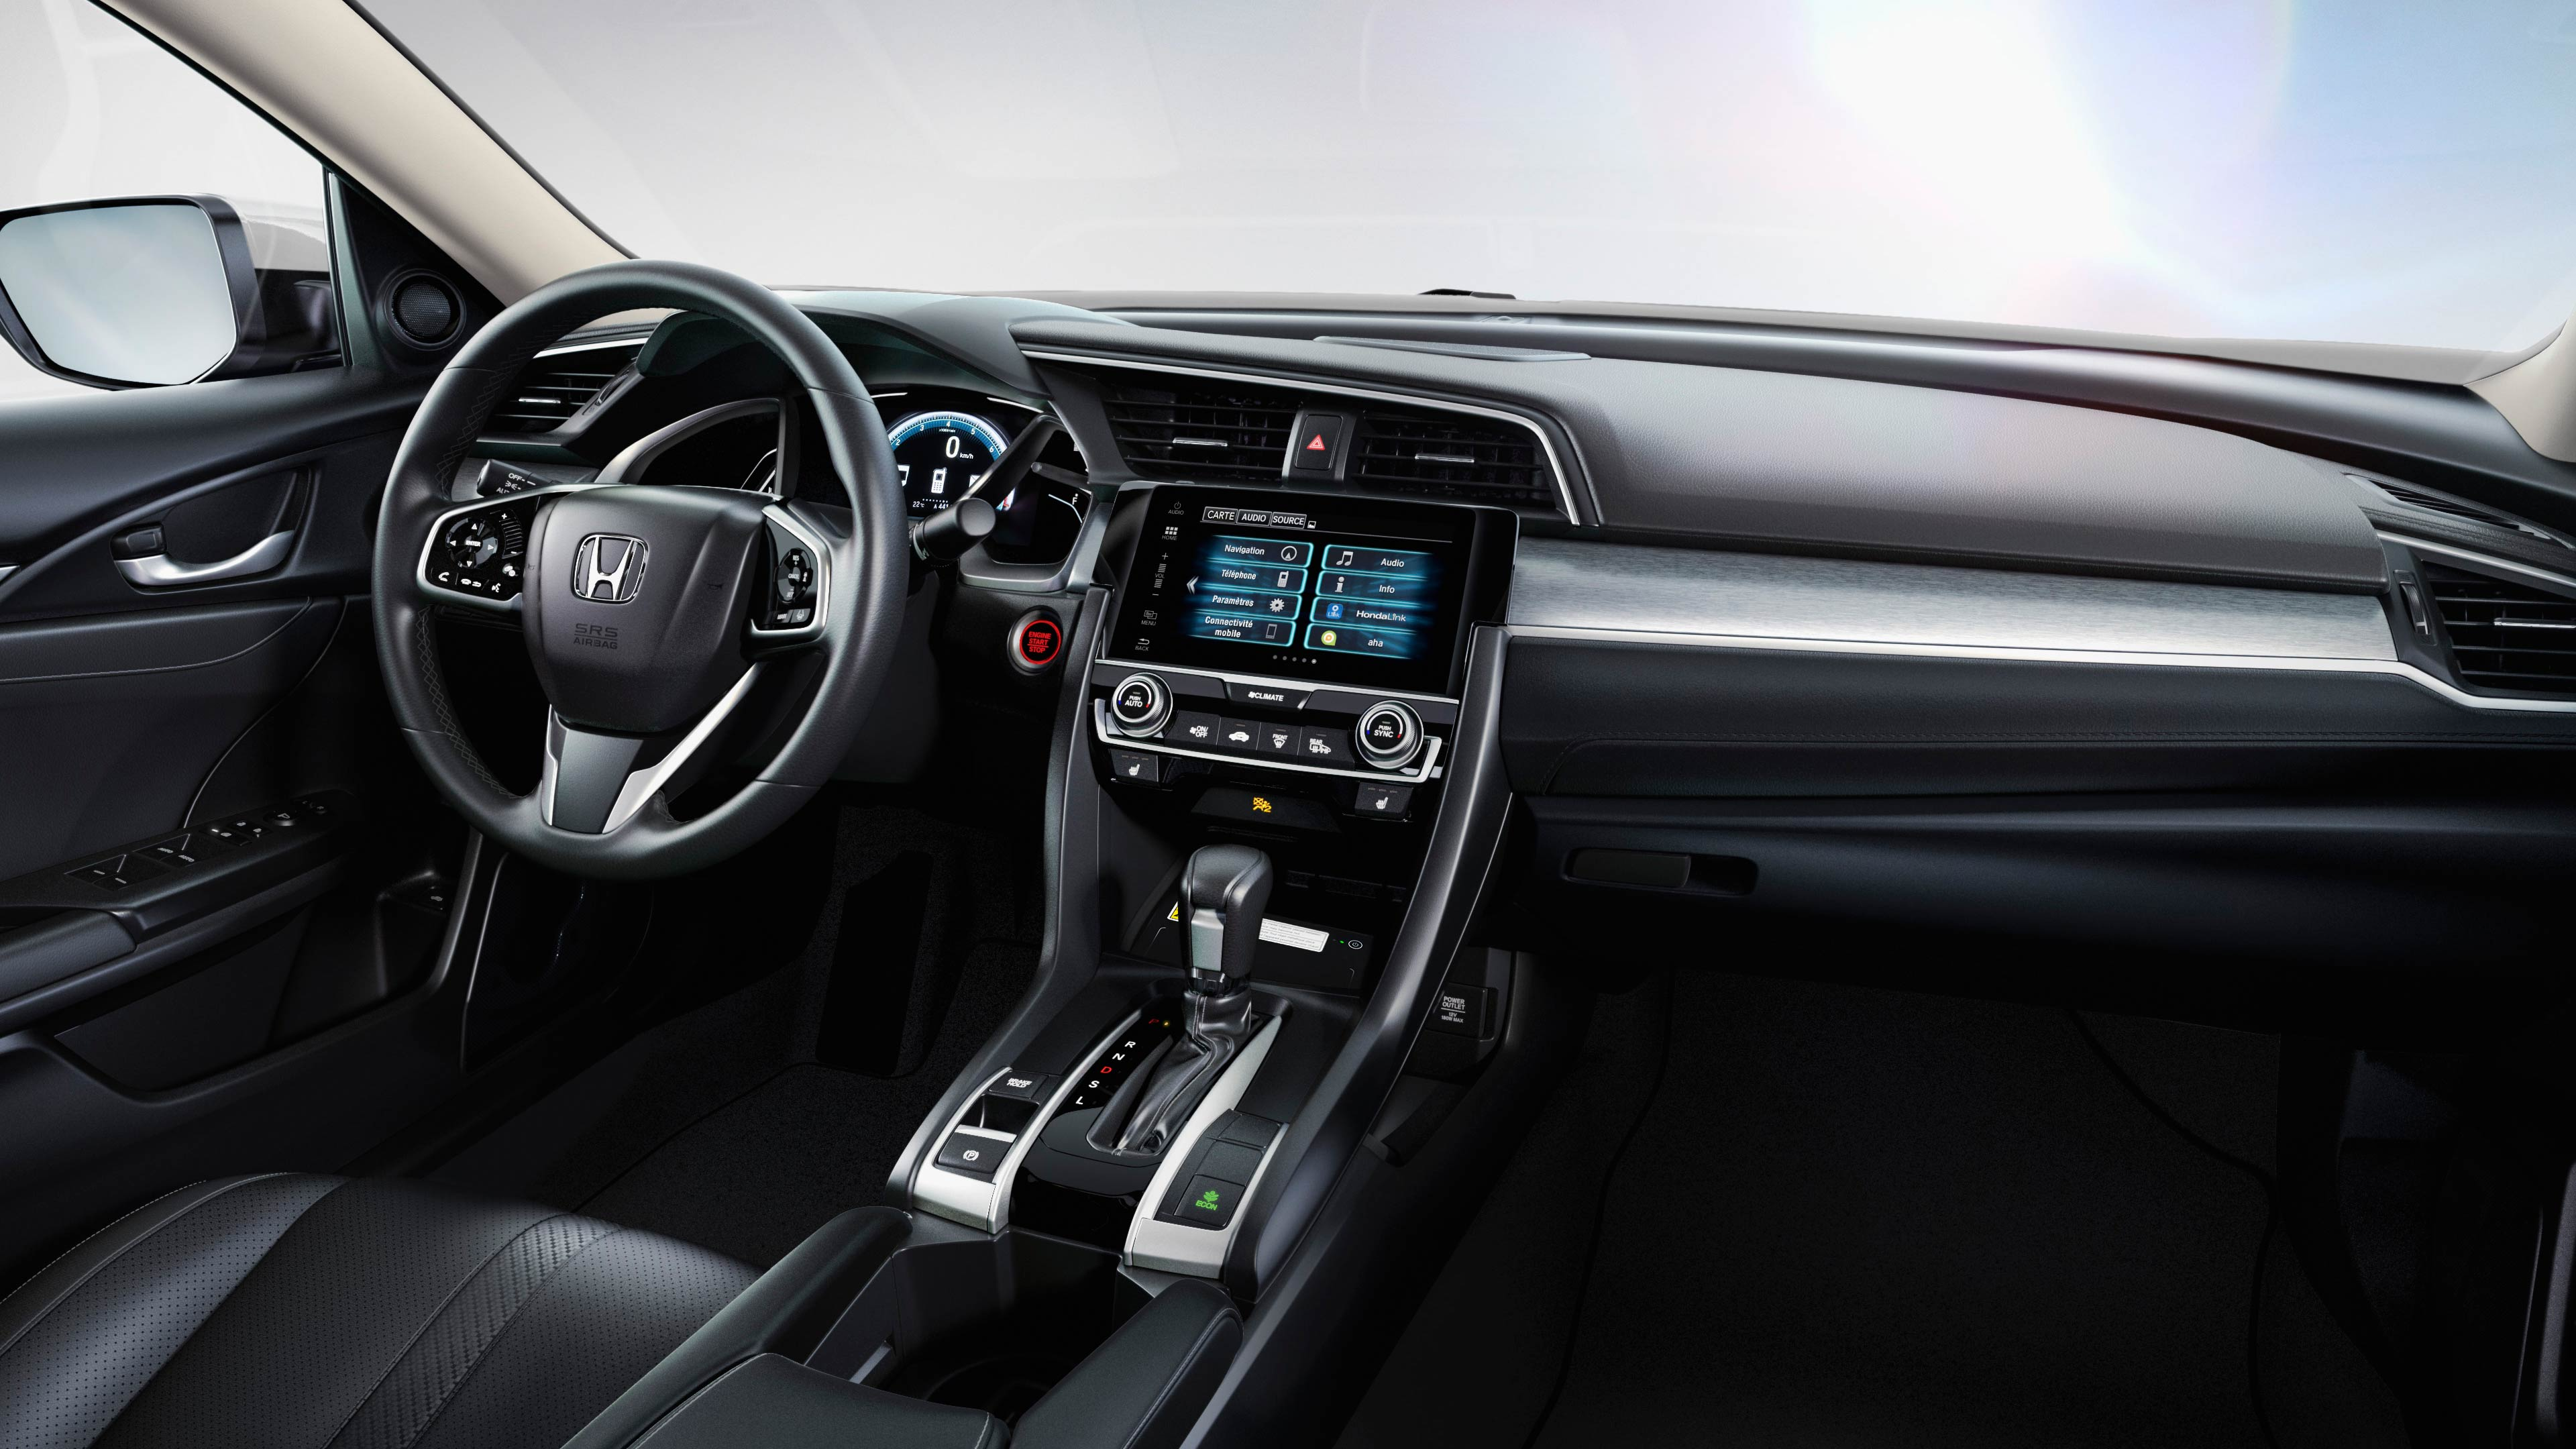 2016 HONDA CIVIC DASH